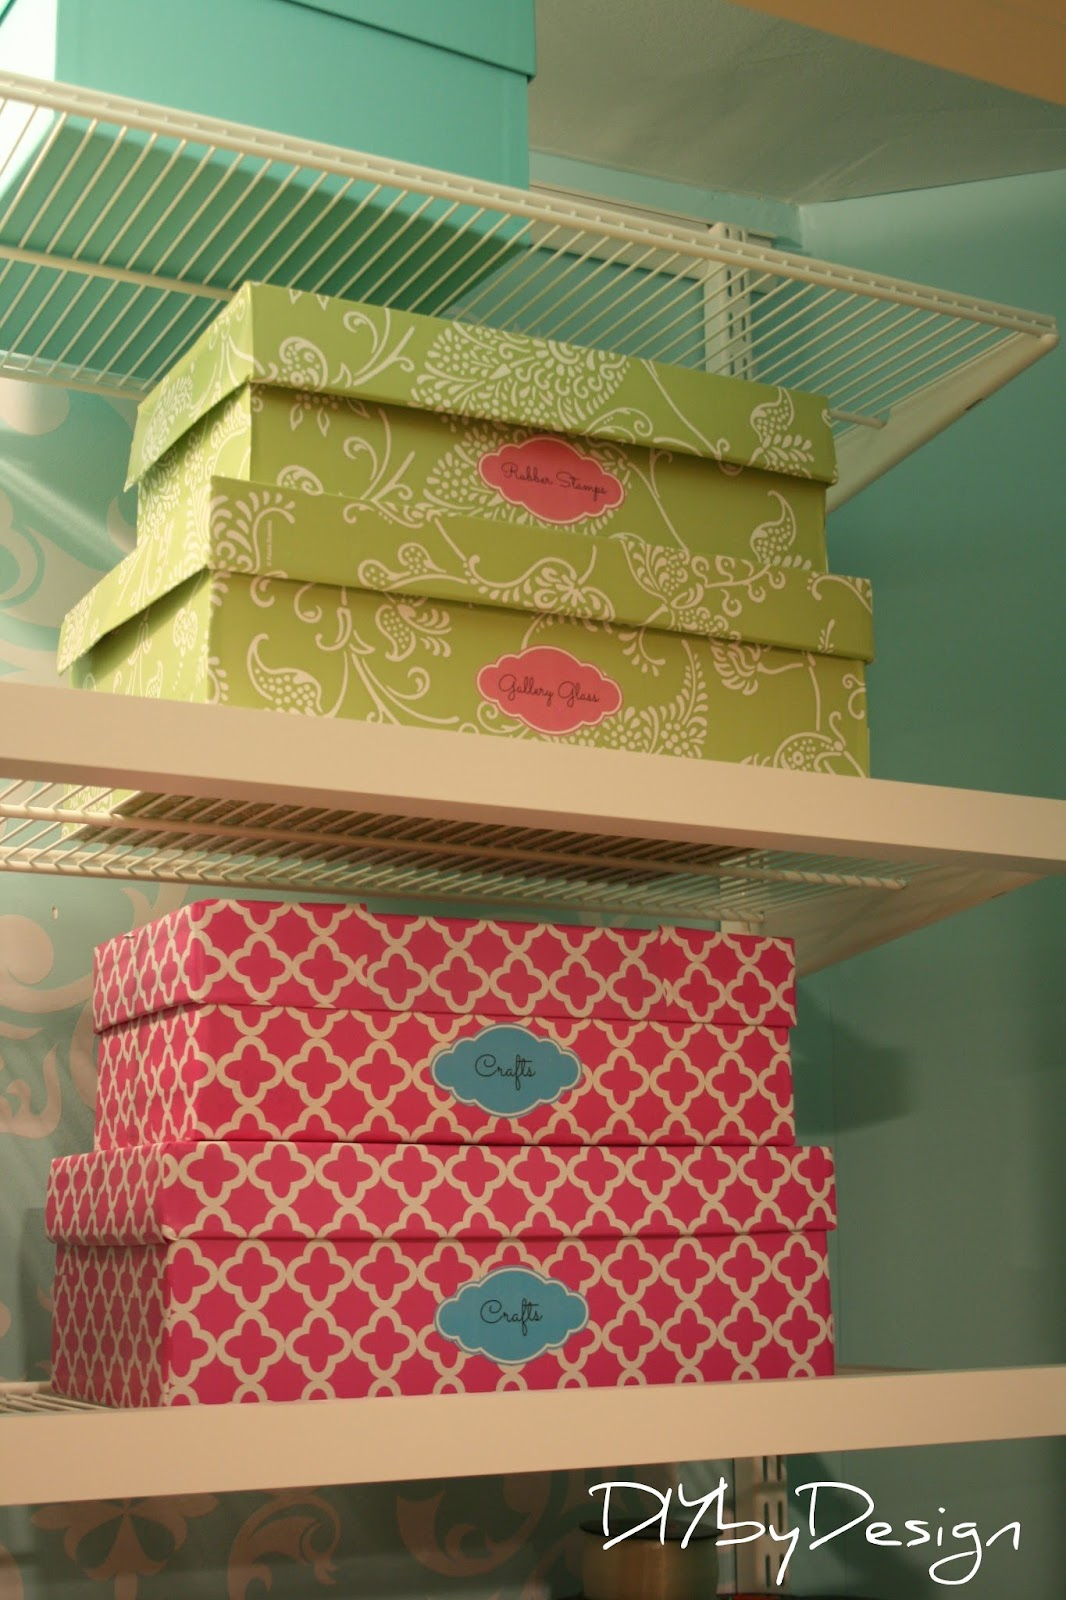 Decorative Boxes For Closets : Diy by design craft closet projects